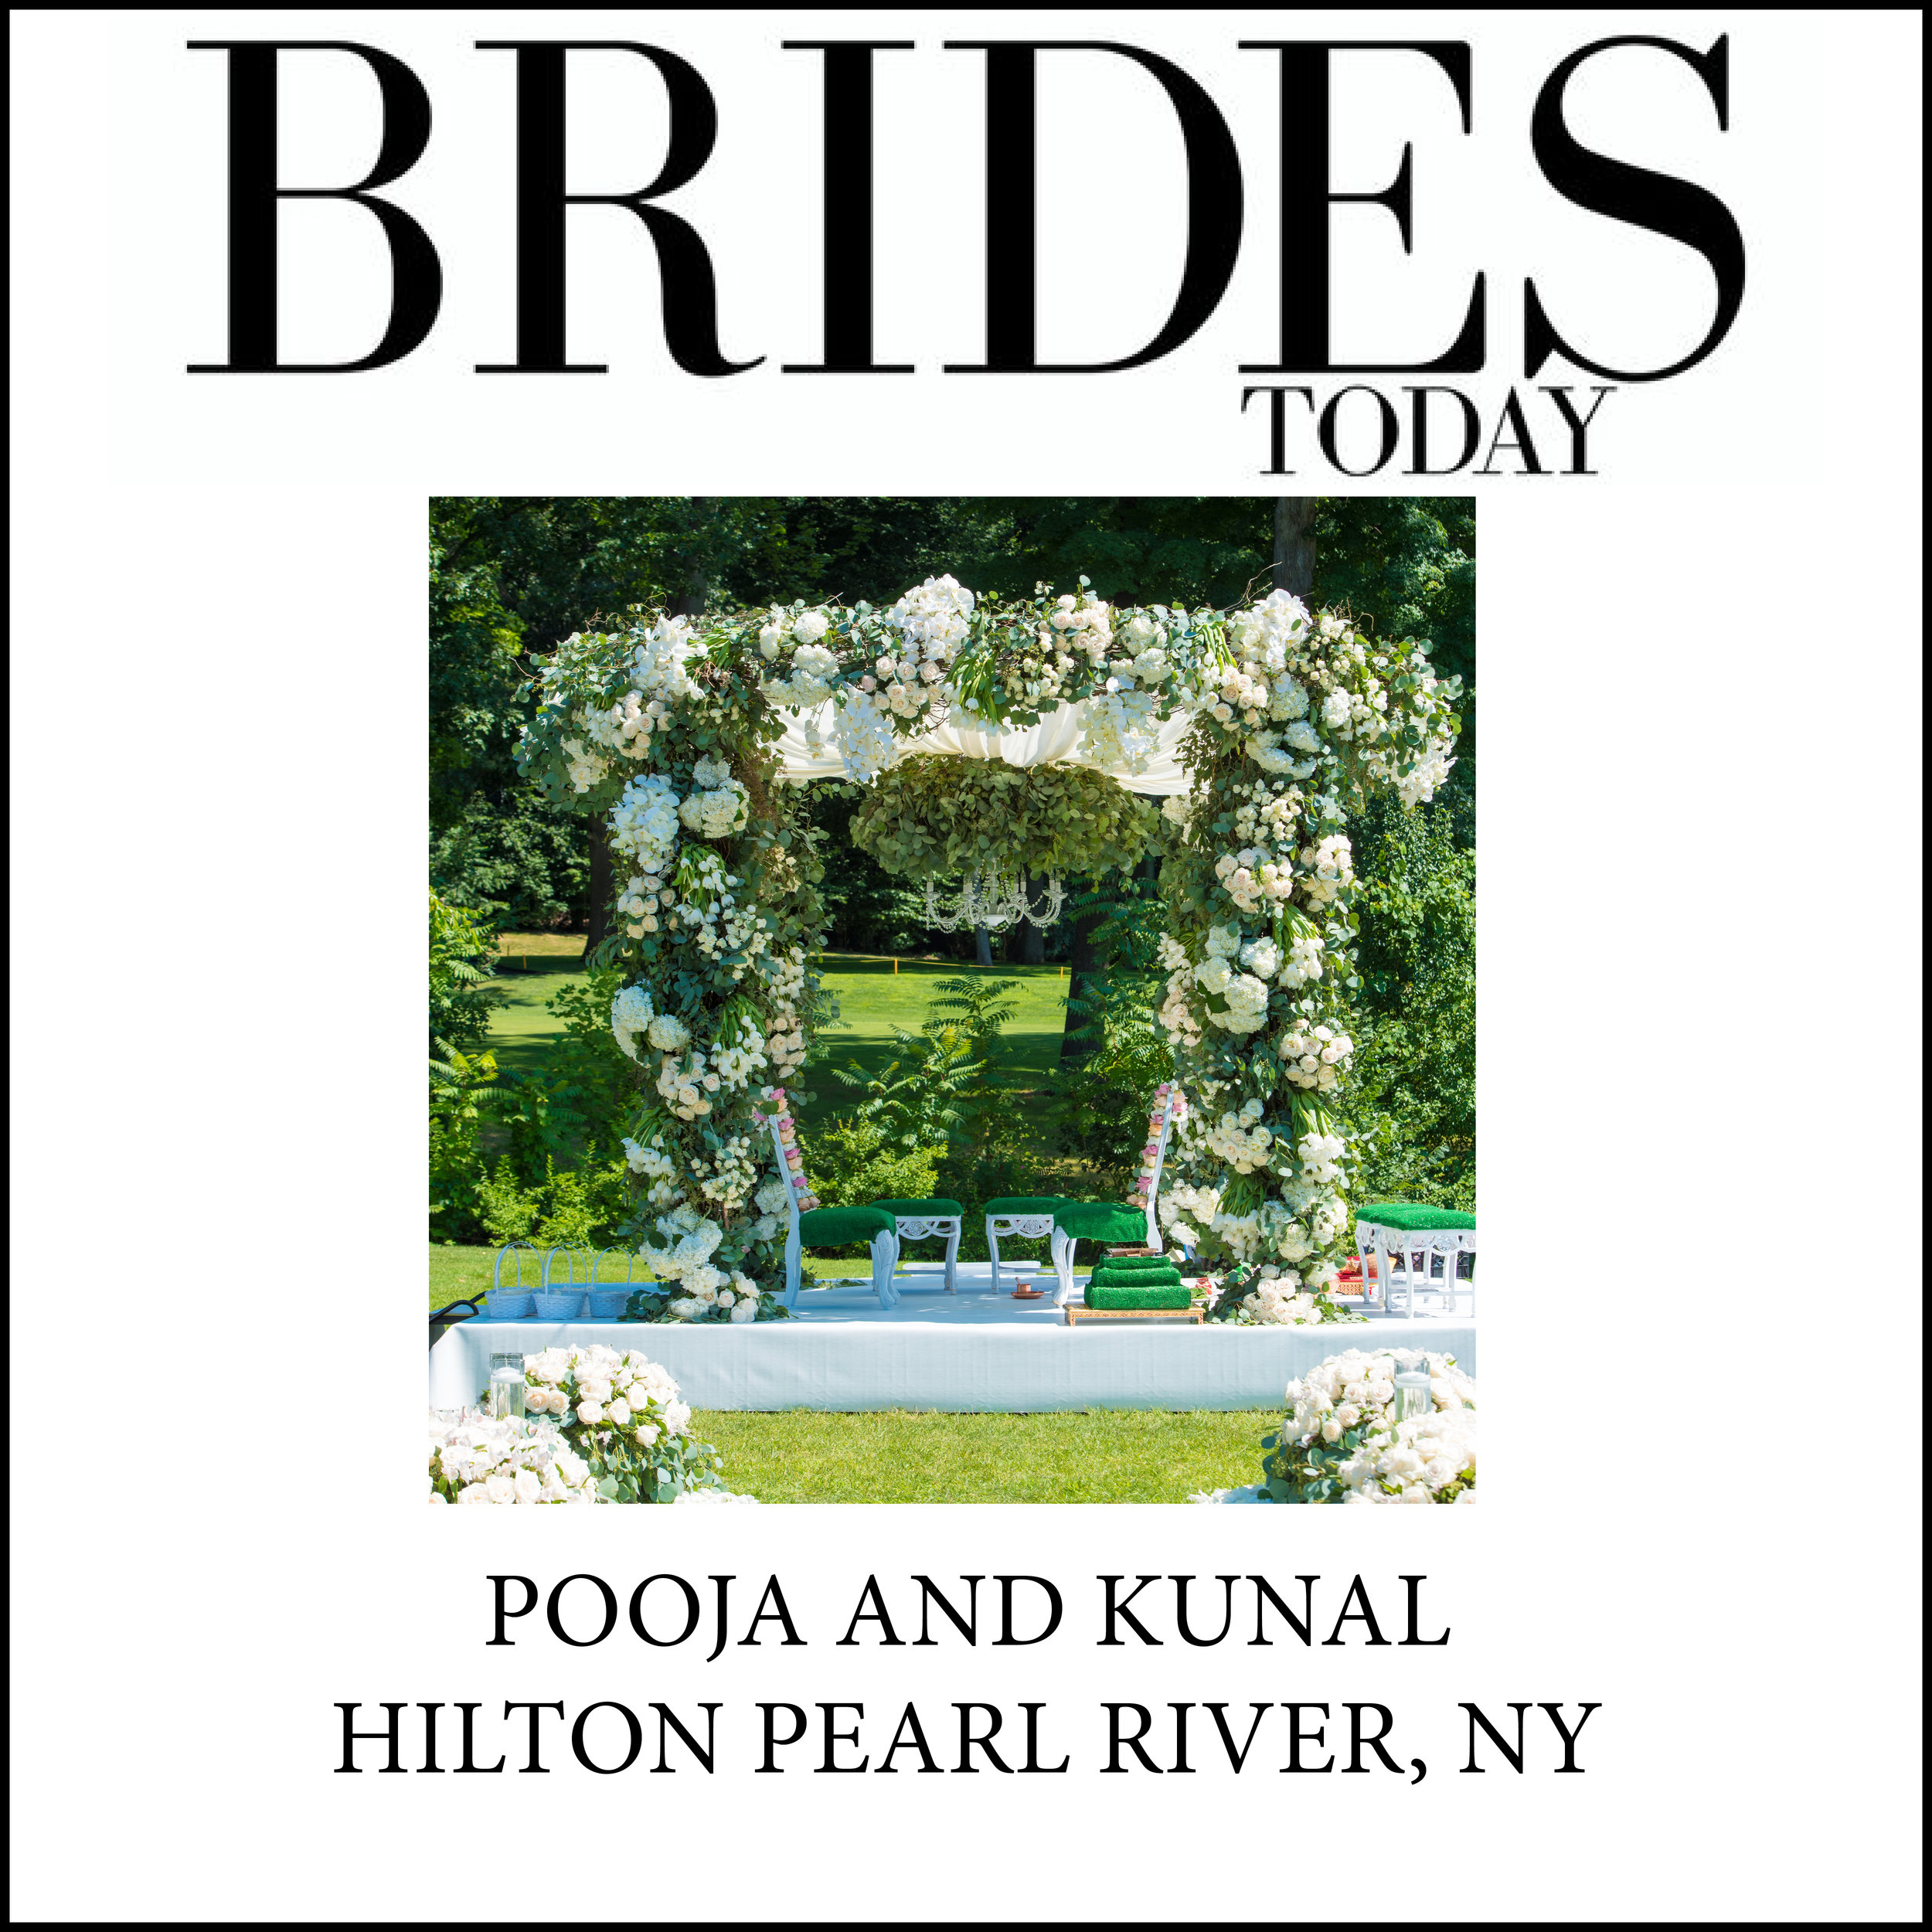 brides today pooja and kunal.jpg